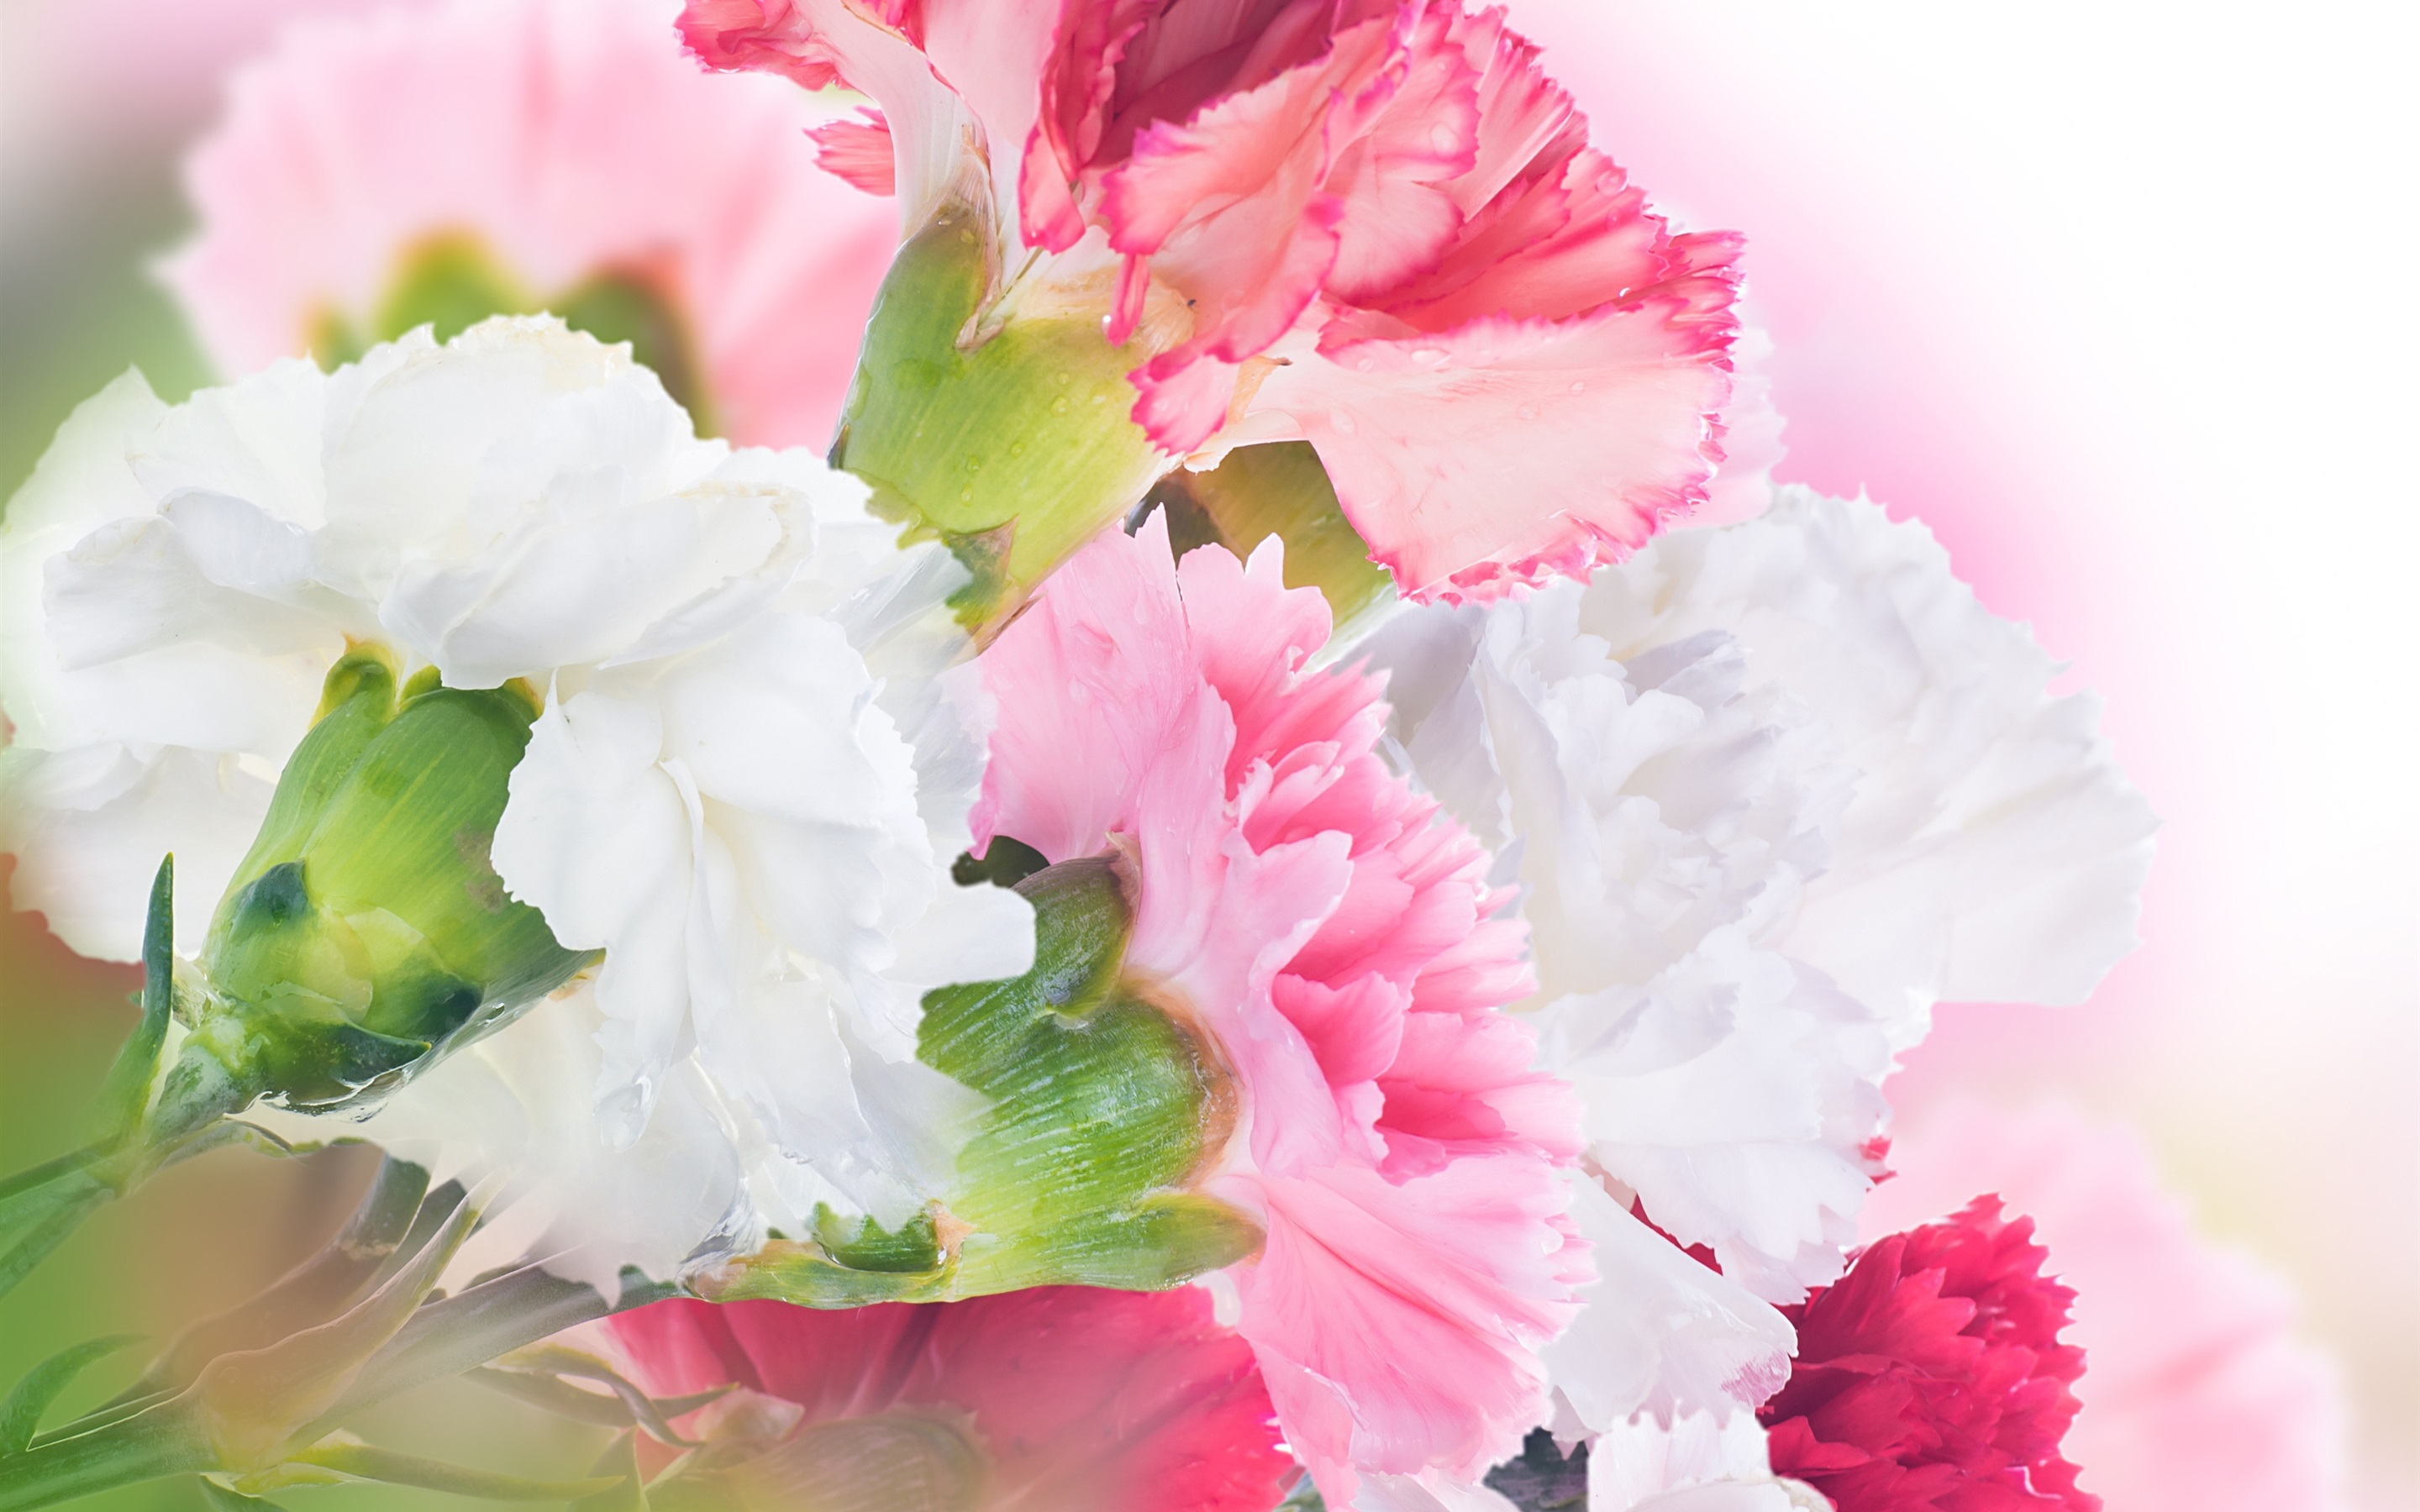 Wallpaper Carnations White And Pink Flowers 2880x1800 Hd Picture Image